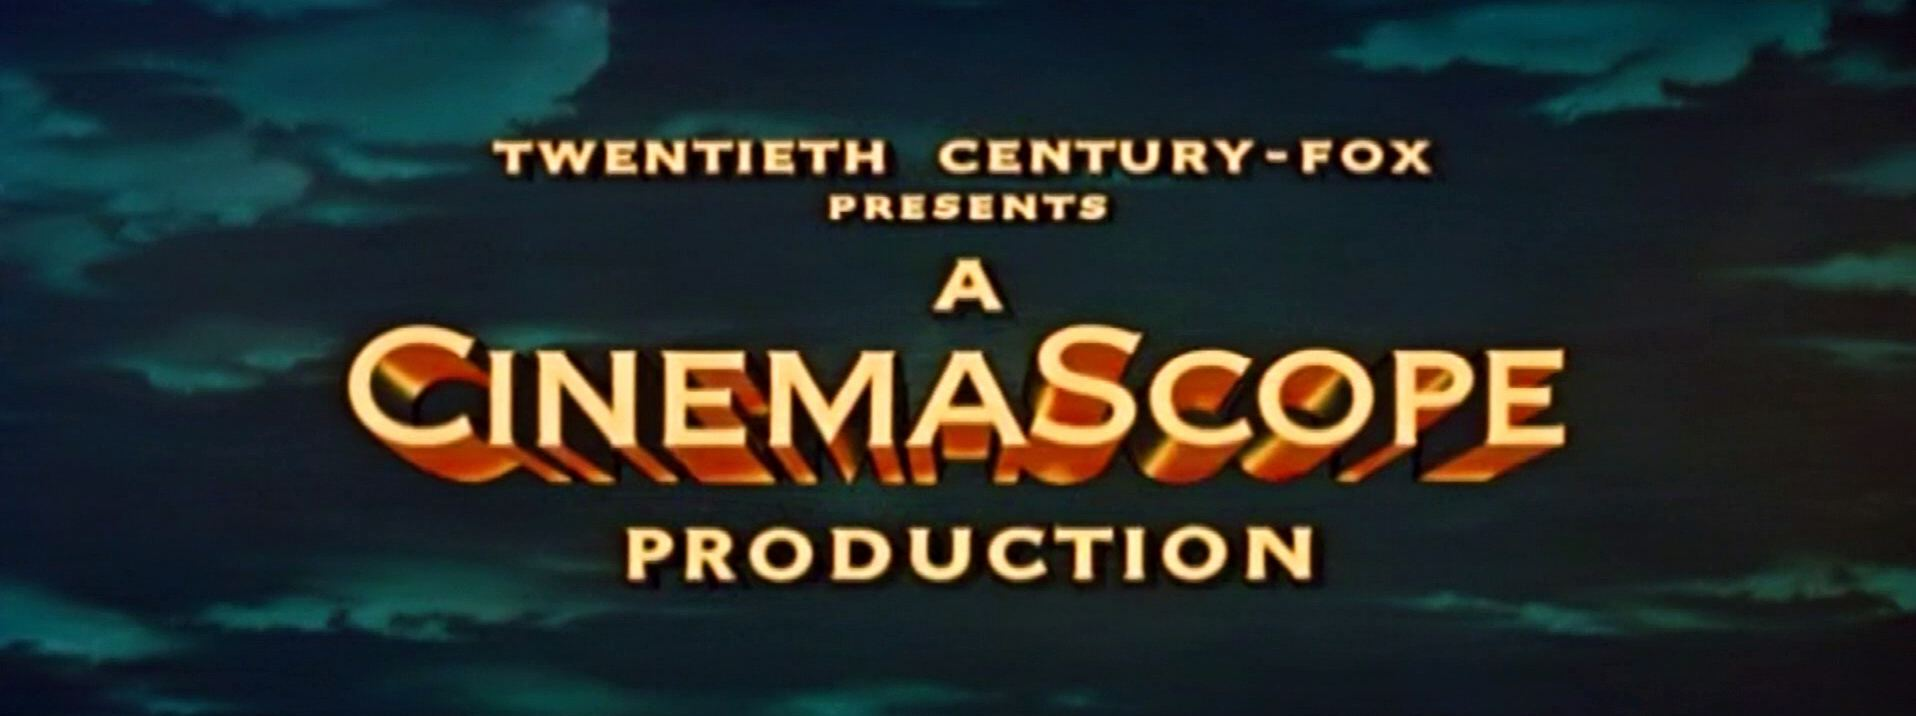 Main title from The Egyptian (1954) (2). Twentieth-Century Fox presents a CinemaScope production